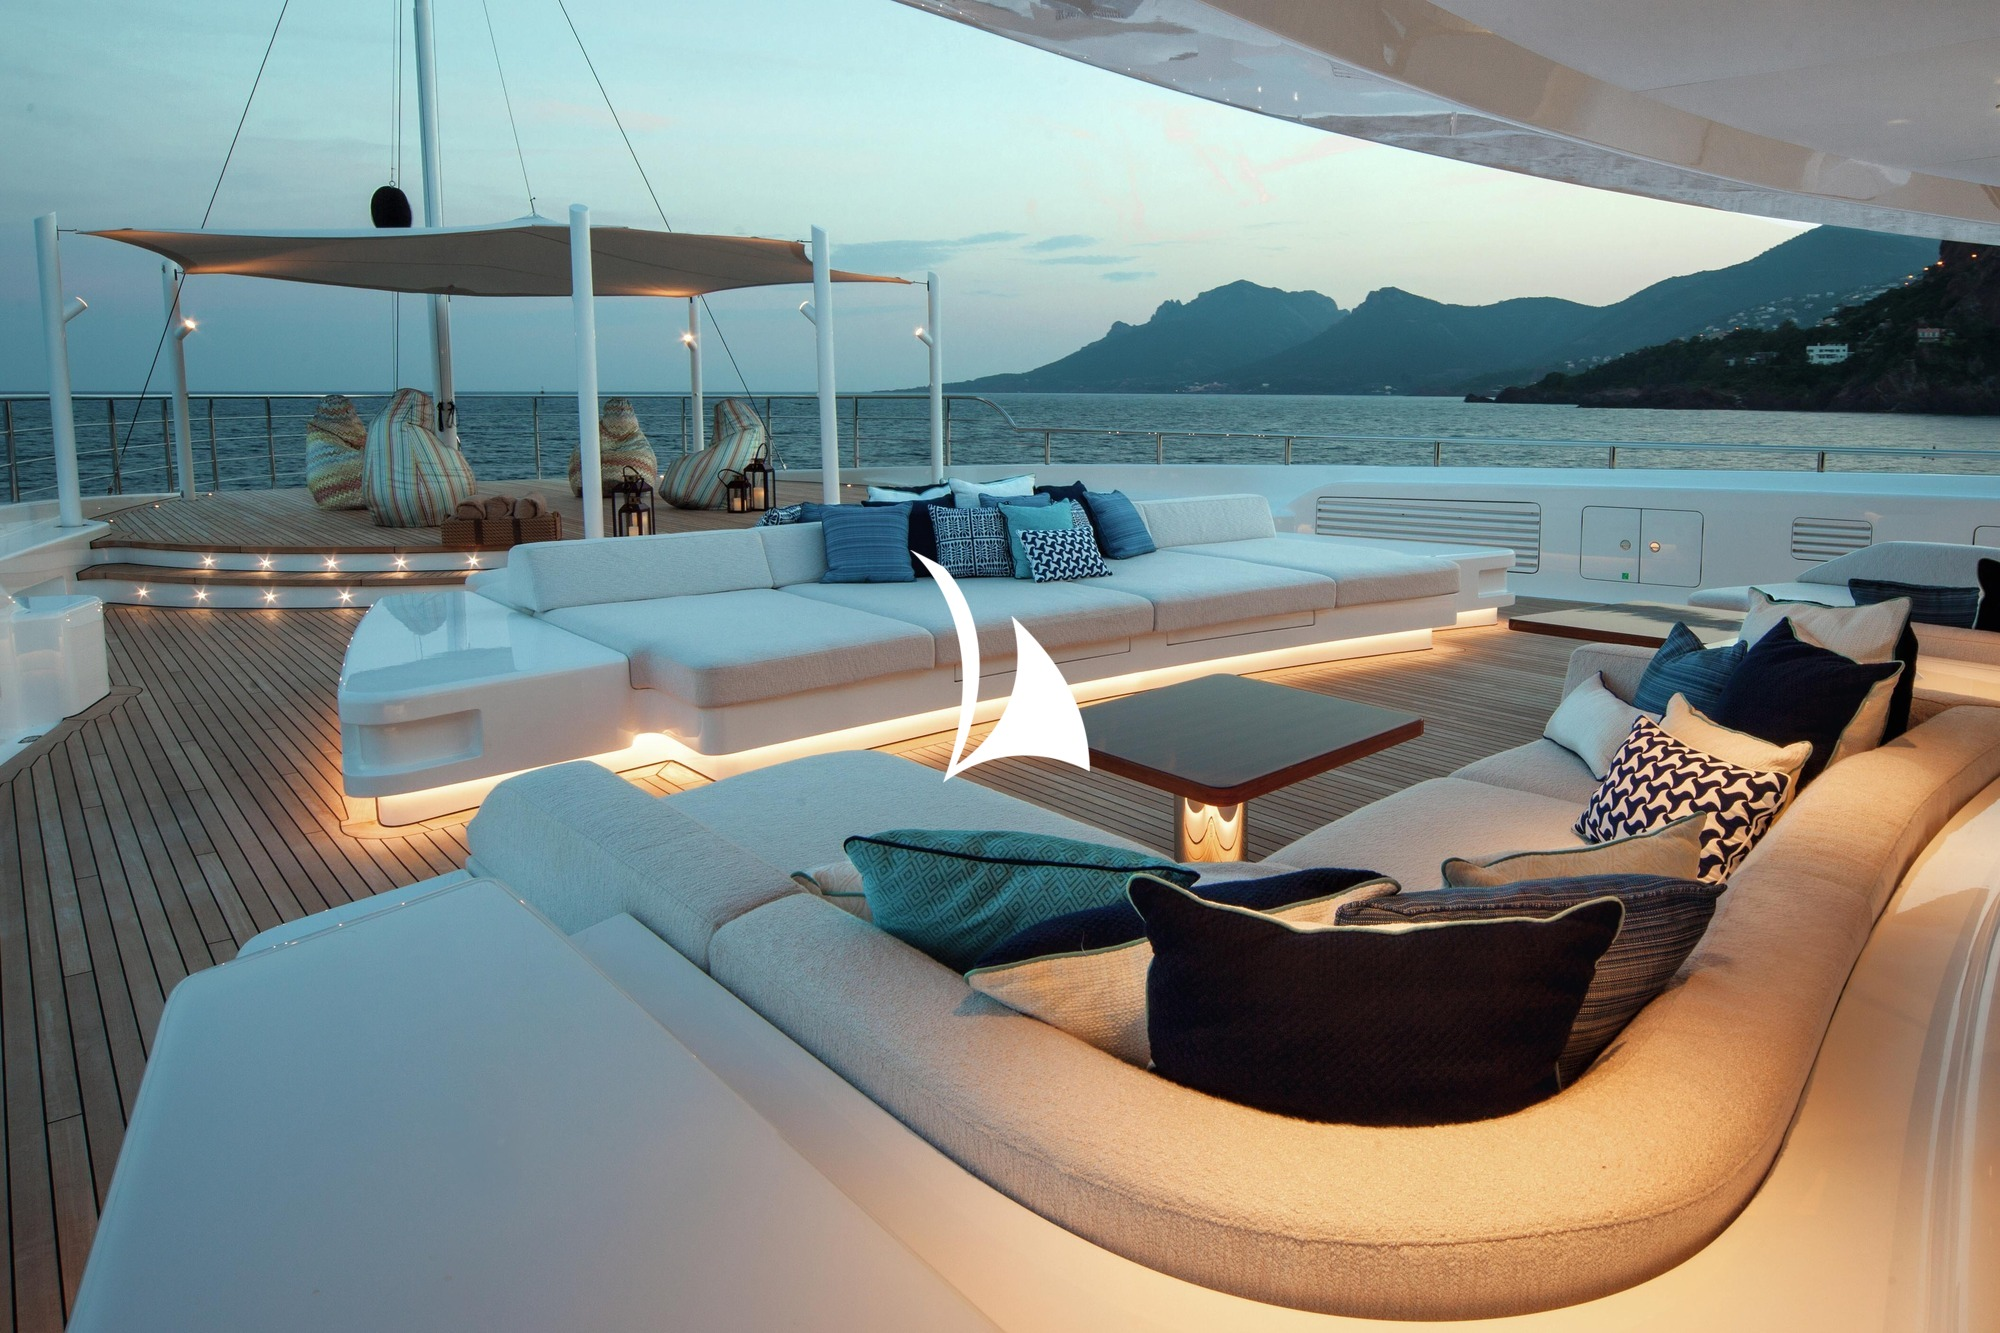 crewed motor yacht, motor yacht cloud 9, yacht cloud 9